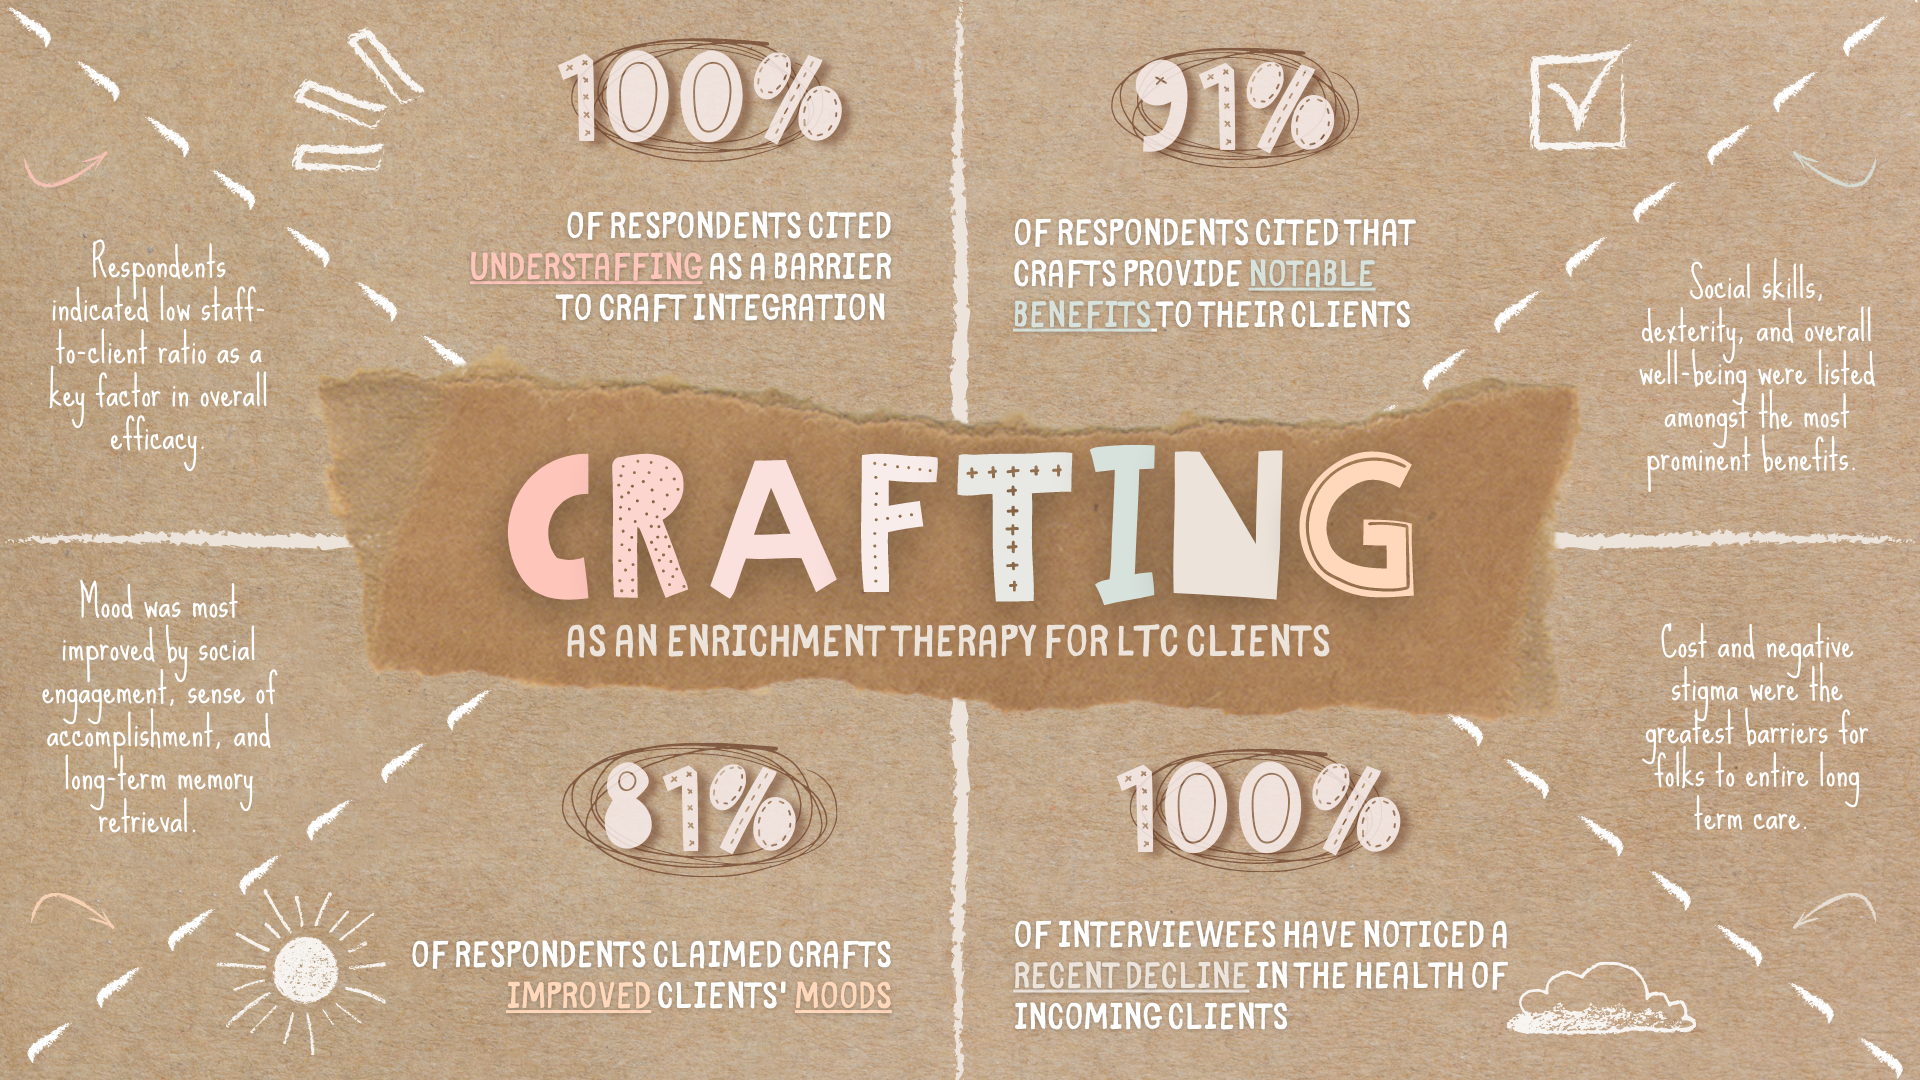 Crafting as an Enrichment Therapy in LTC Homes